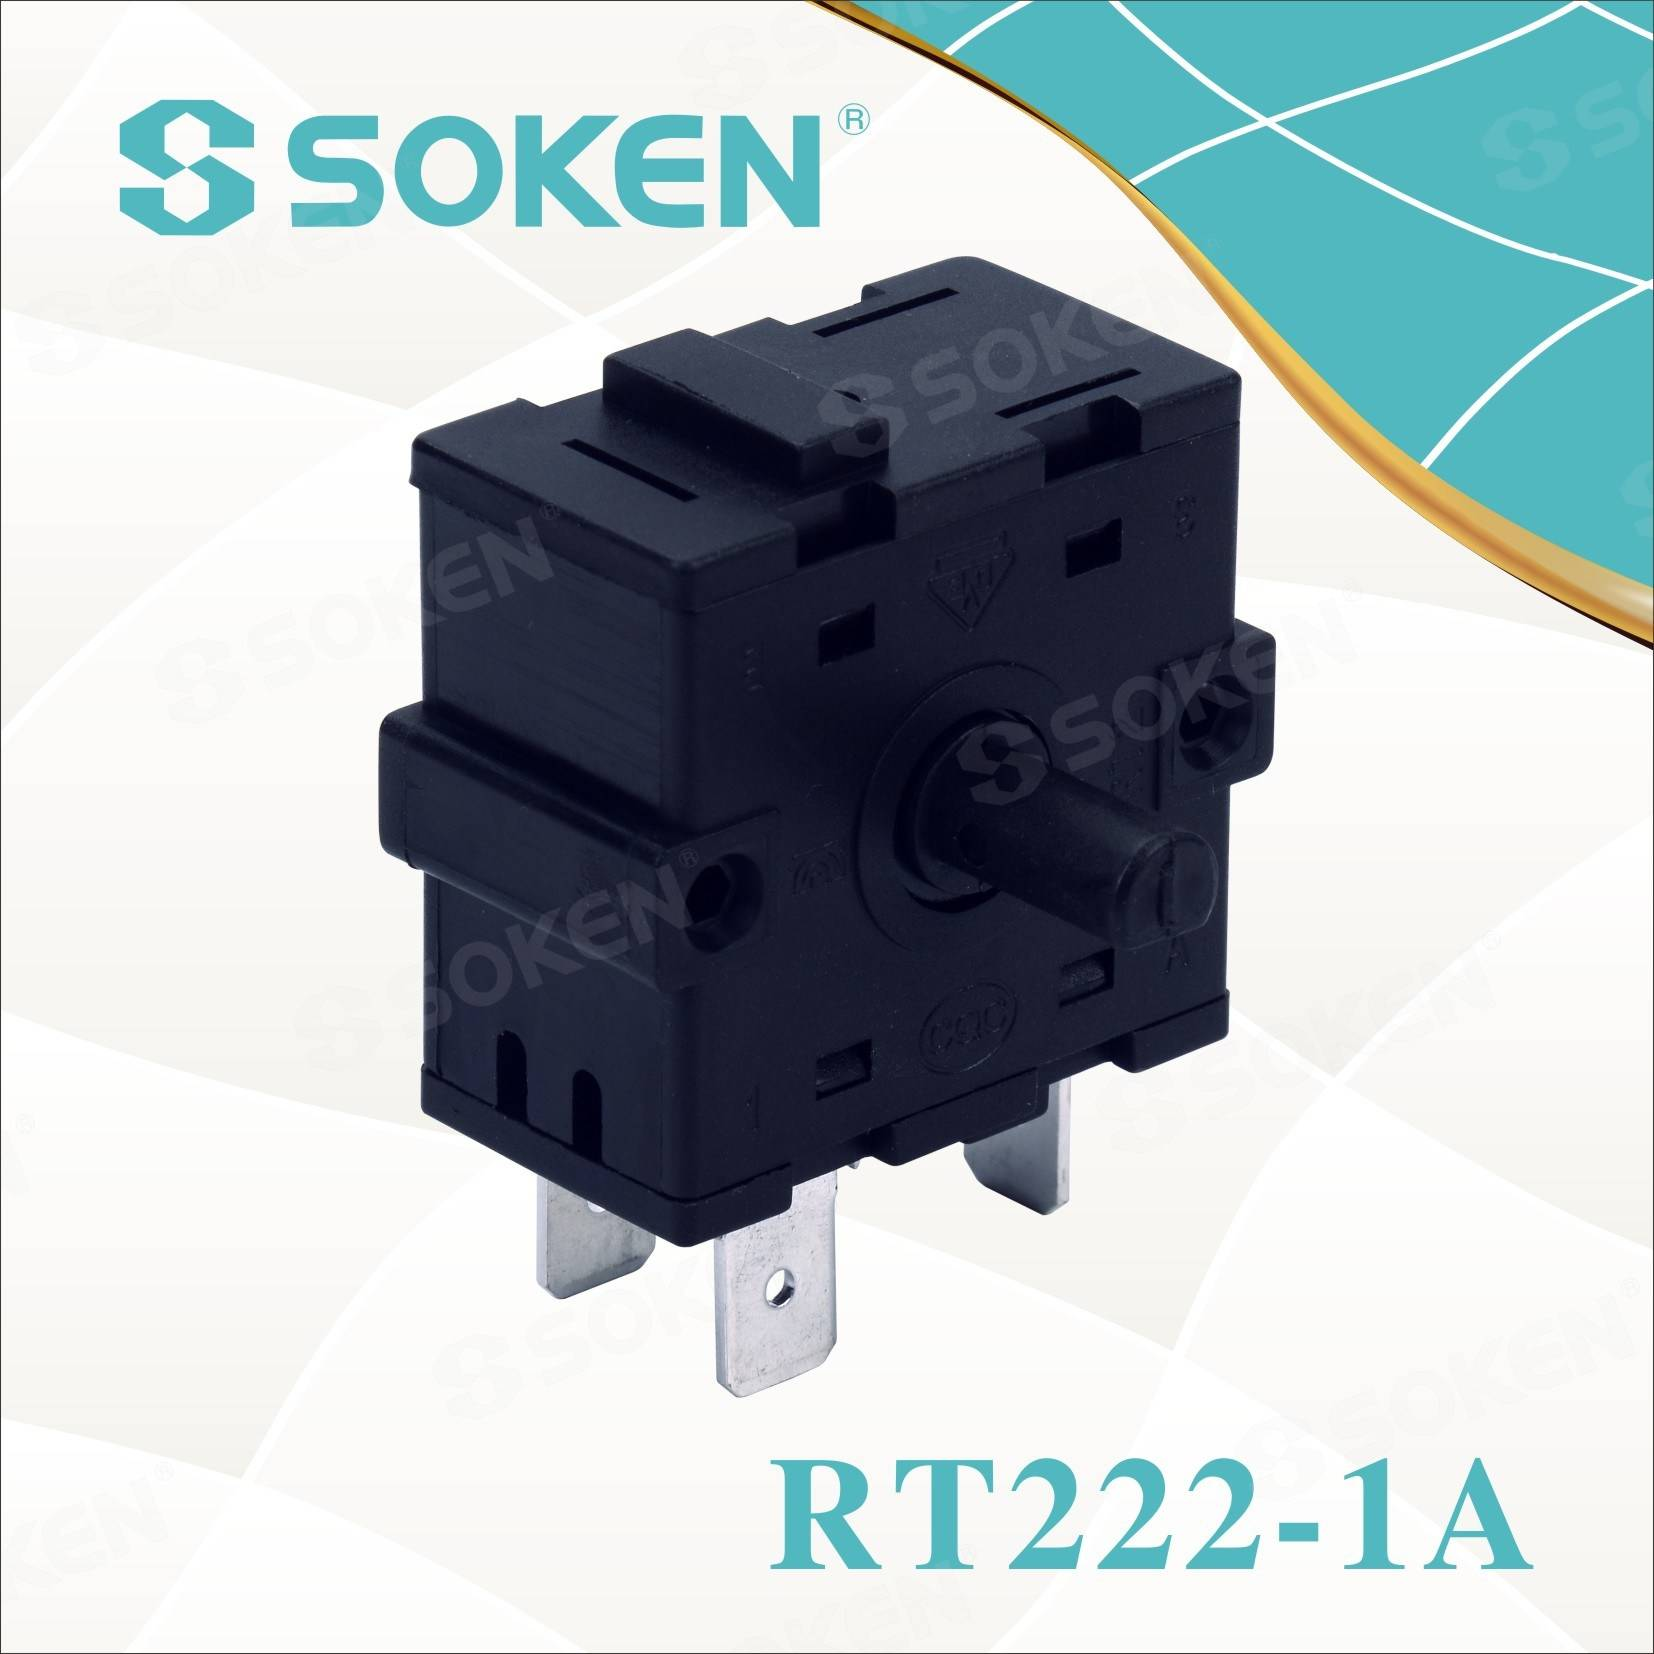 Soken Rotary Switch 2 Position